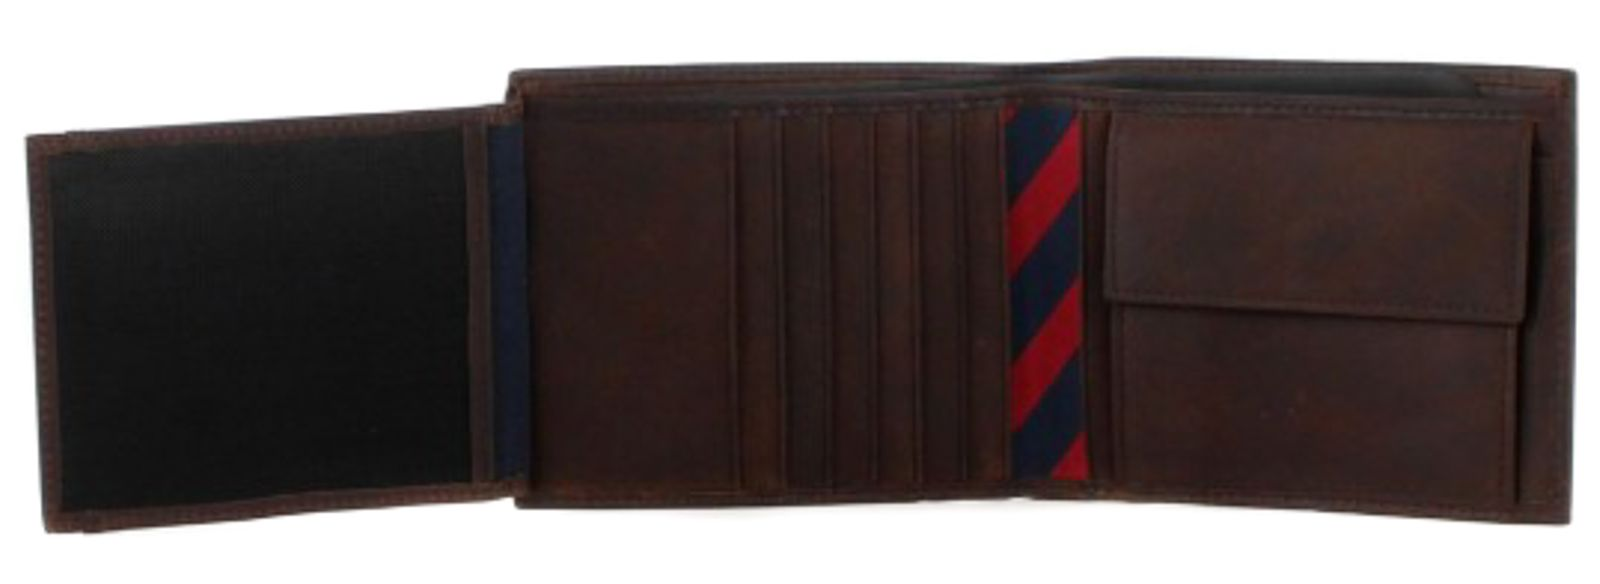 34eda456e659b Tommy Hilfiger Johnson Trifold Wallet - Image Of Wallet